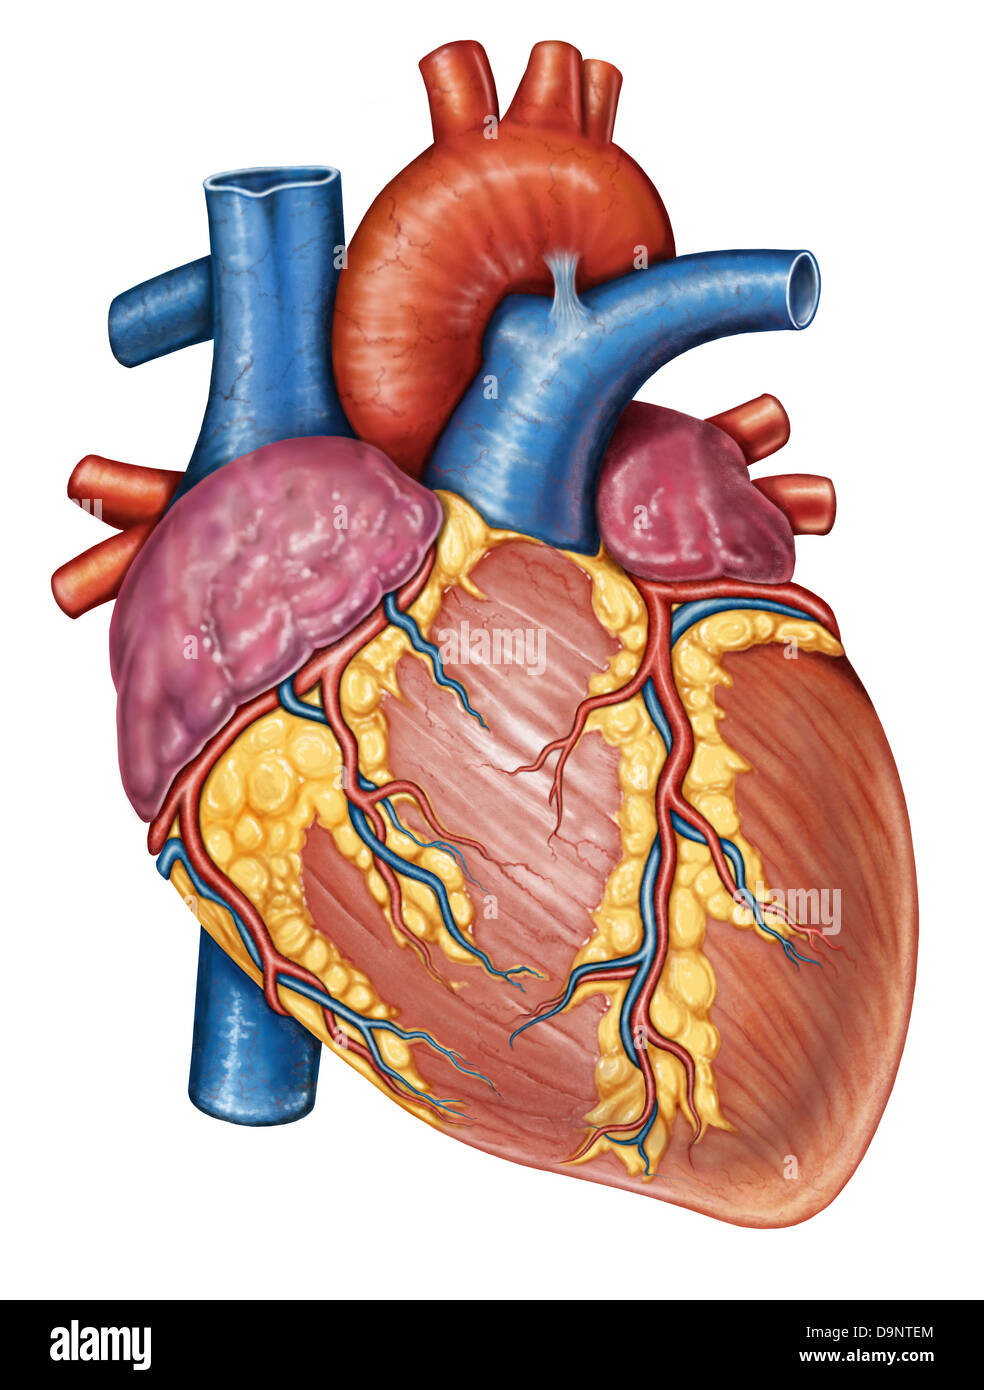 Gross Anatomy Of The Human Heart Stock Photo 57643228 Alamy